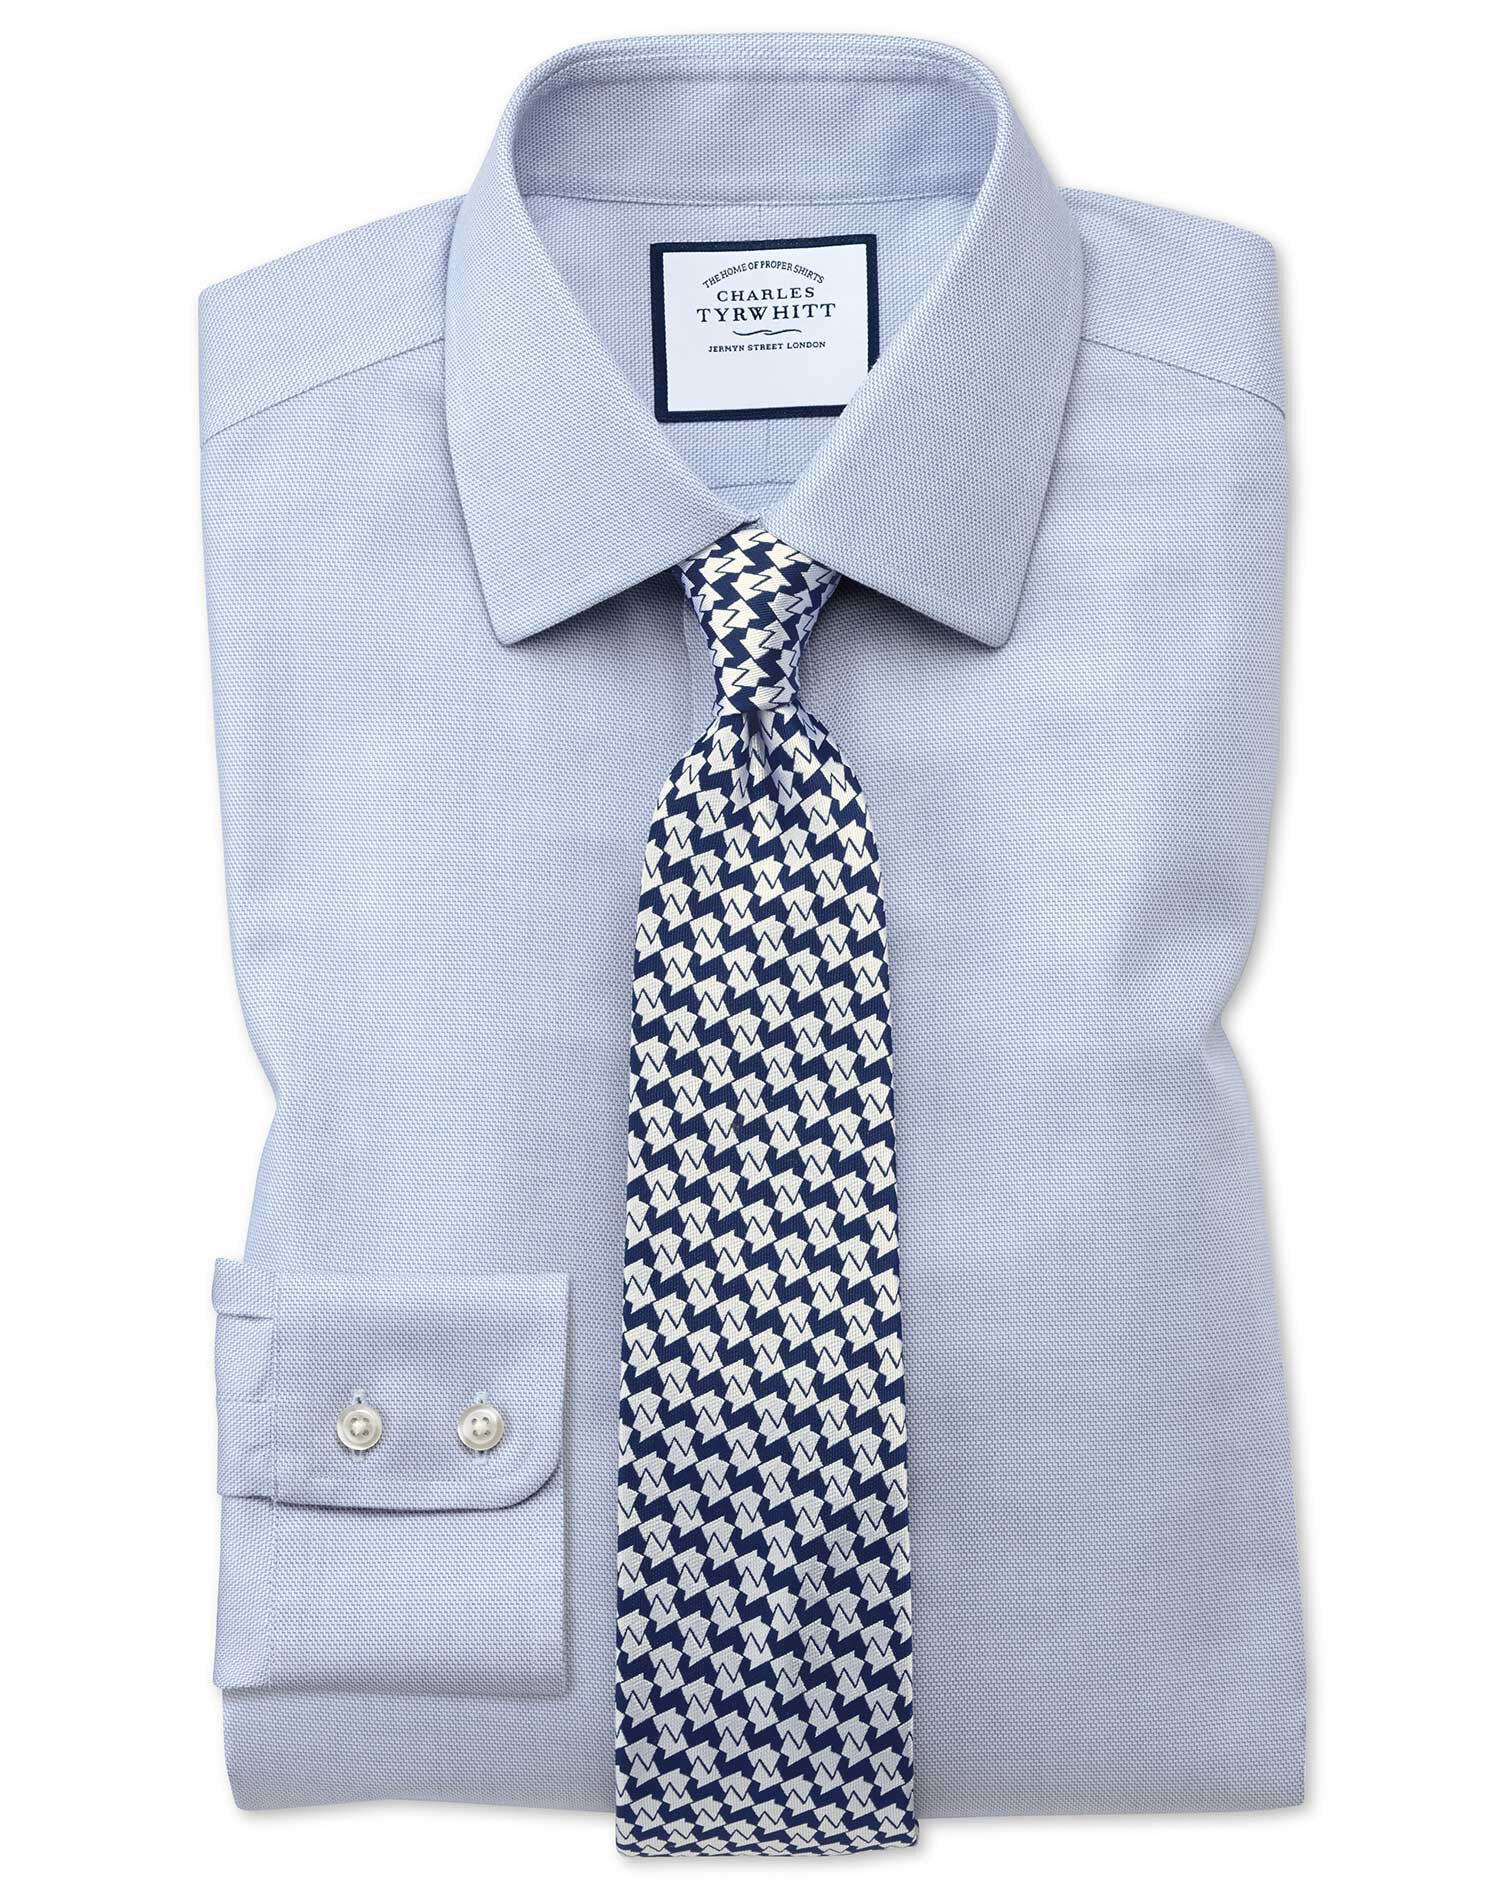 Extra Slim Fit Non-Iron Step Weave Mid Blue Cotton Formal Shirt Double Cuff Size 16.5/34 by Charles